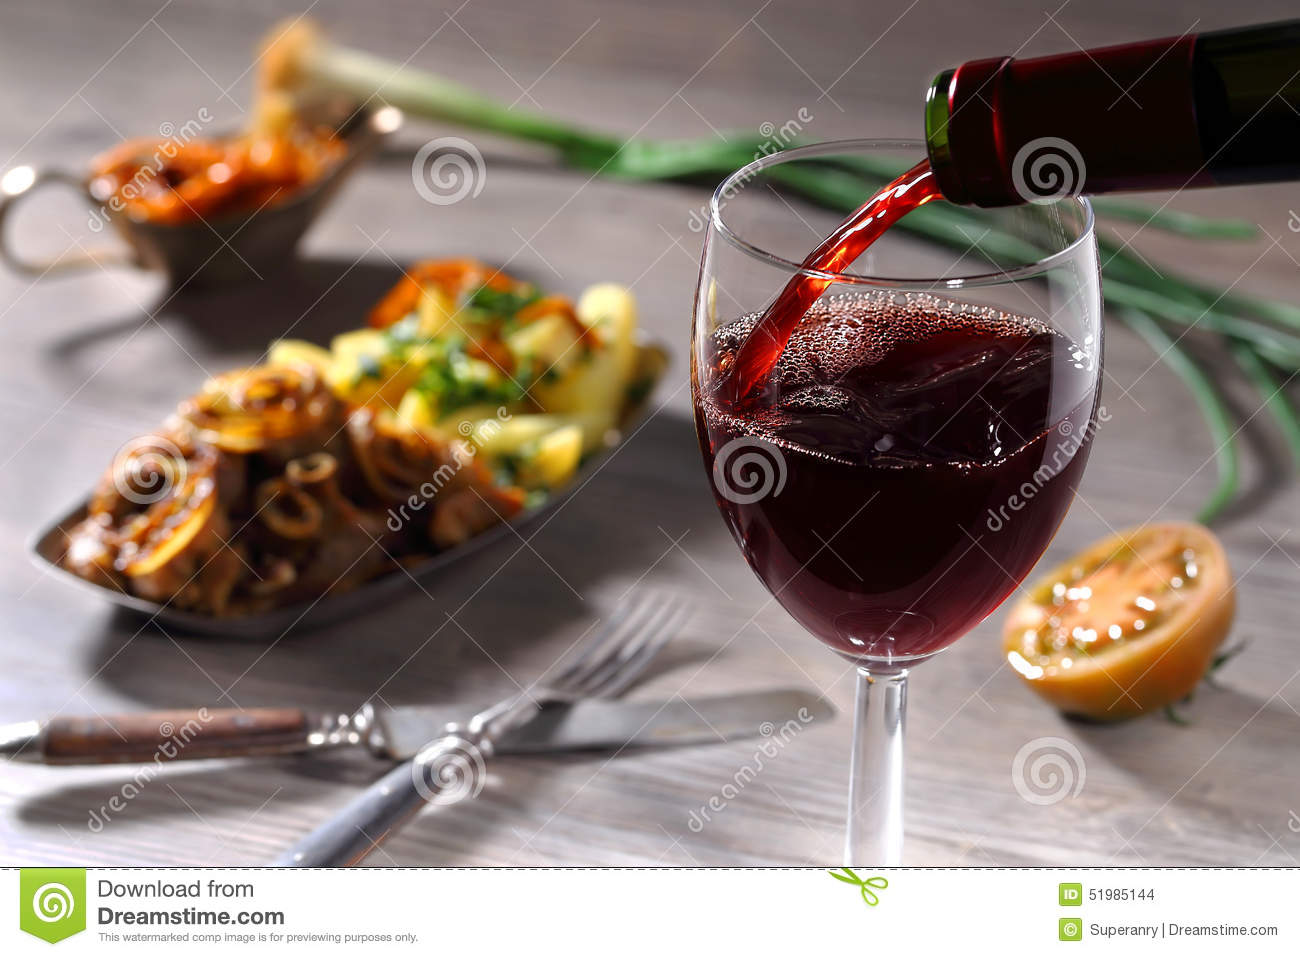 9 Wine Food Stock Photo Images